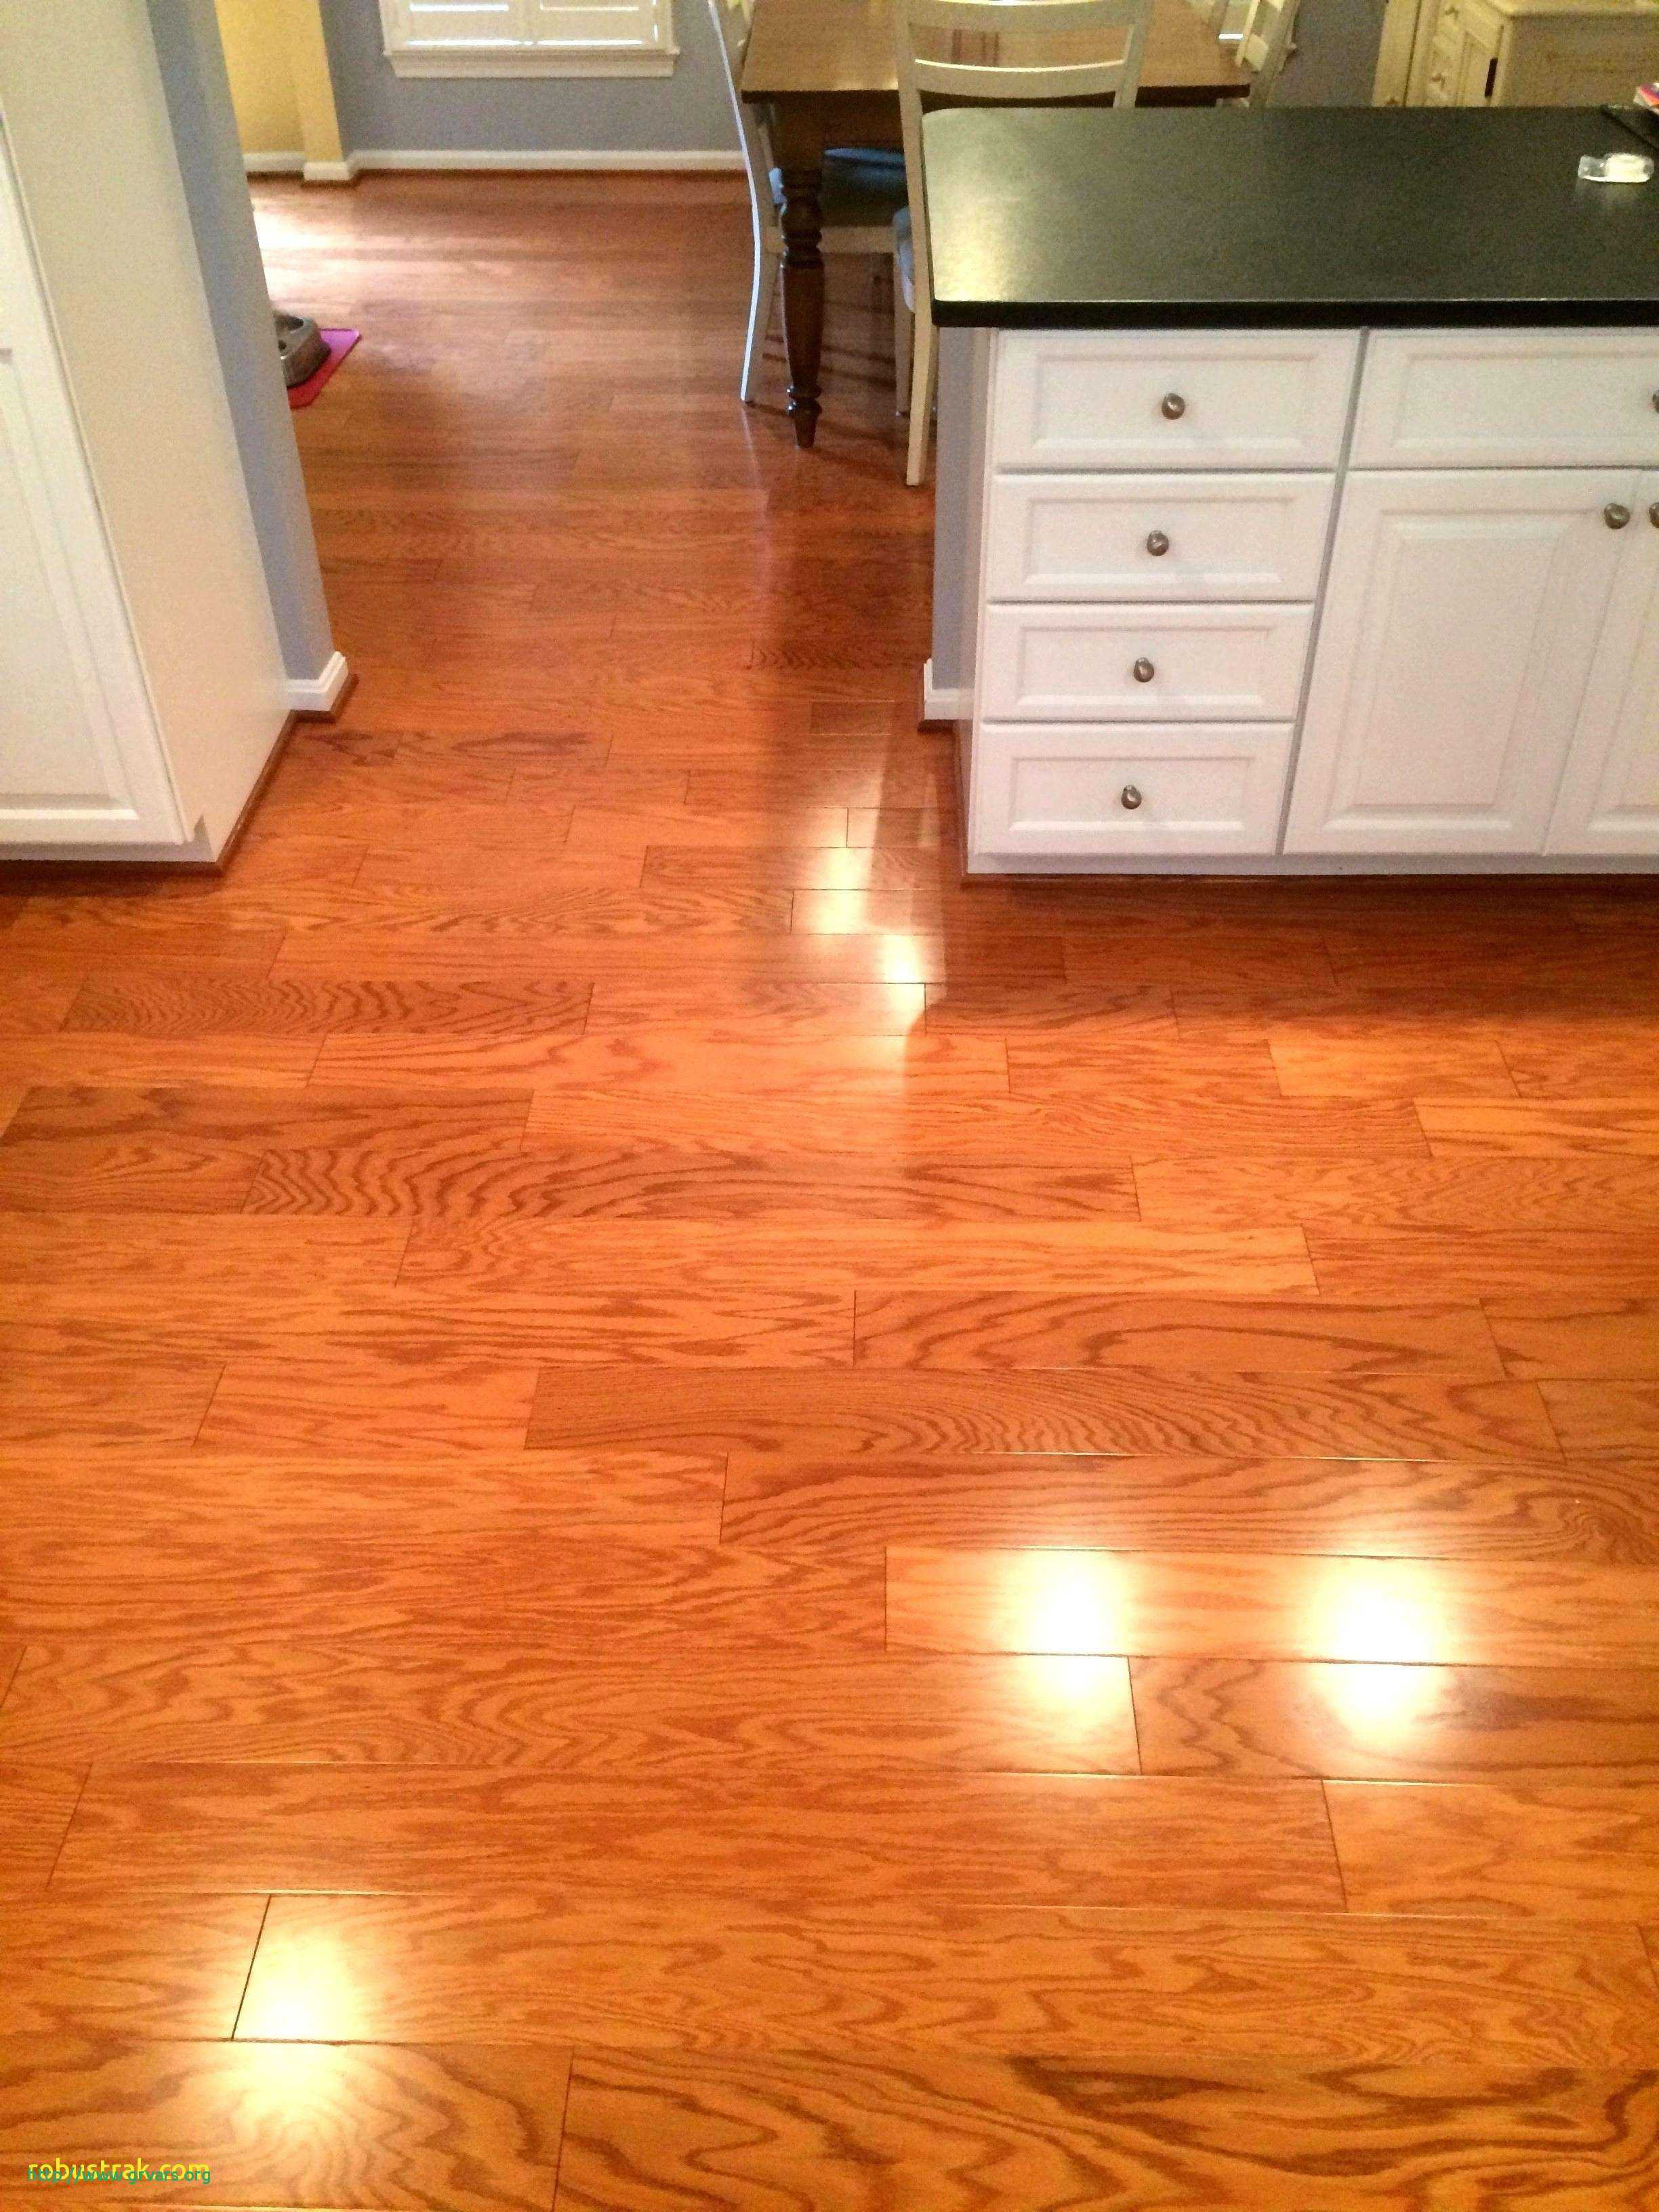 best cleaner for prefinished hardwood floors of 23 frais how much is a hardwood floor ideas blog with hardwood floors in the kitchen fresh where to buy hardwood flooring inspirational 0d grace place barnegat